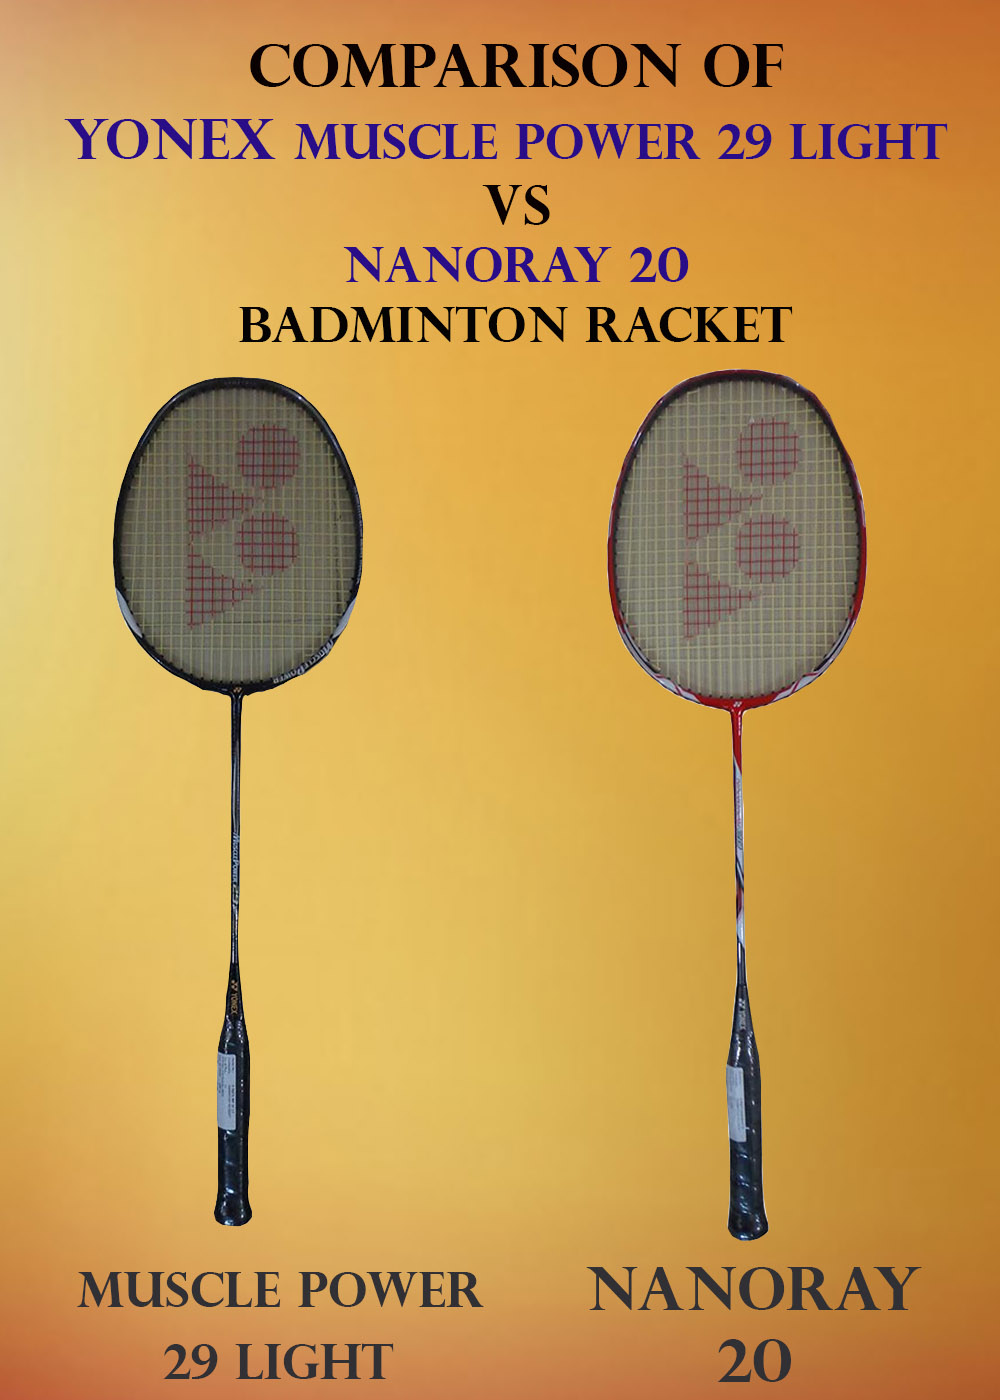 COMPARISON OF YONEX NANORAY 20 VS YONEX MP 29 LIGHT RACKET_2